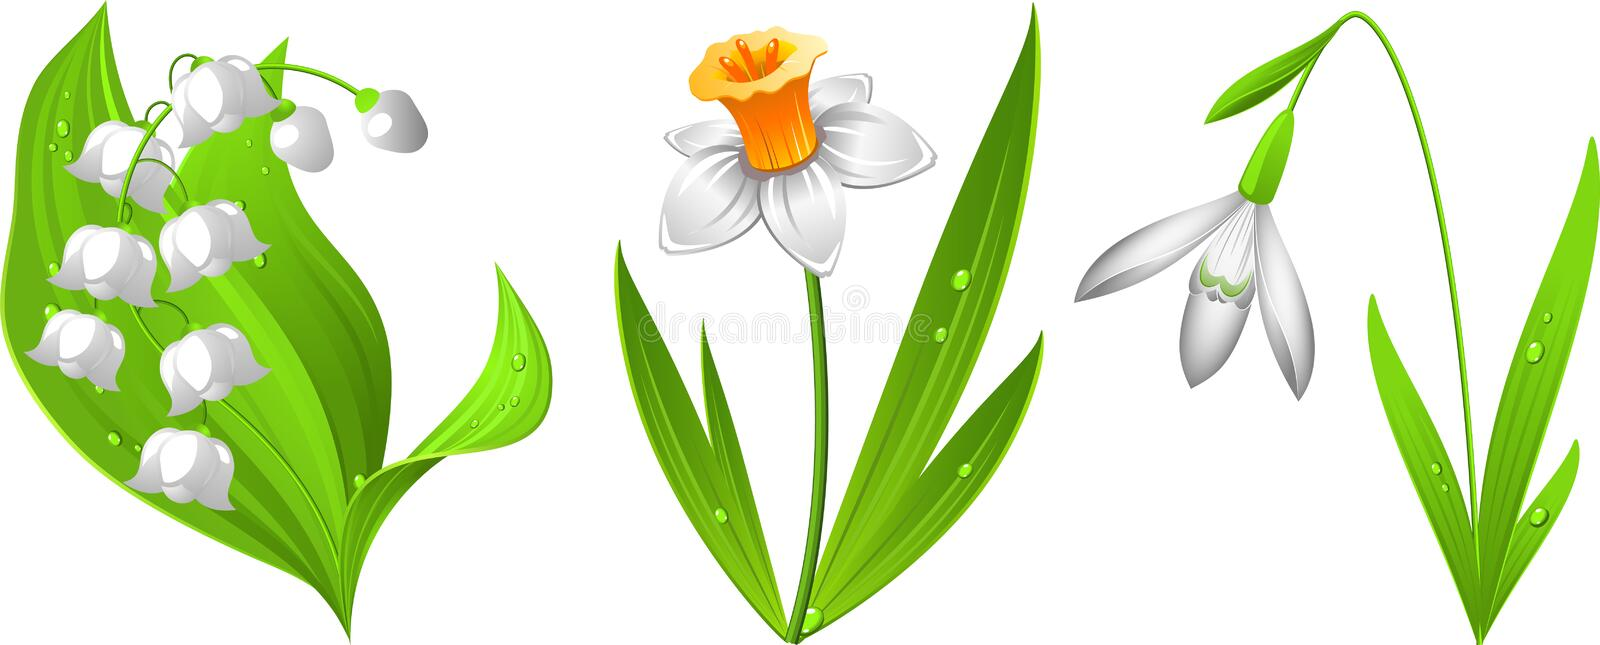 Download Snowdrop, Narcissus, Lily Of The Valley Royalty Free Stock Photography - Image: 13921117